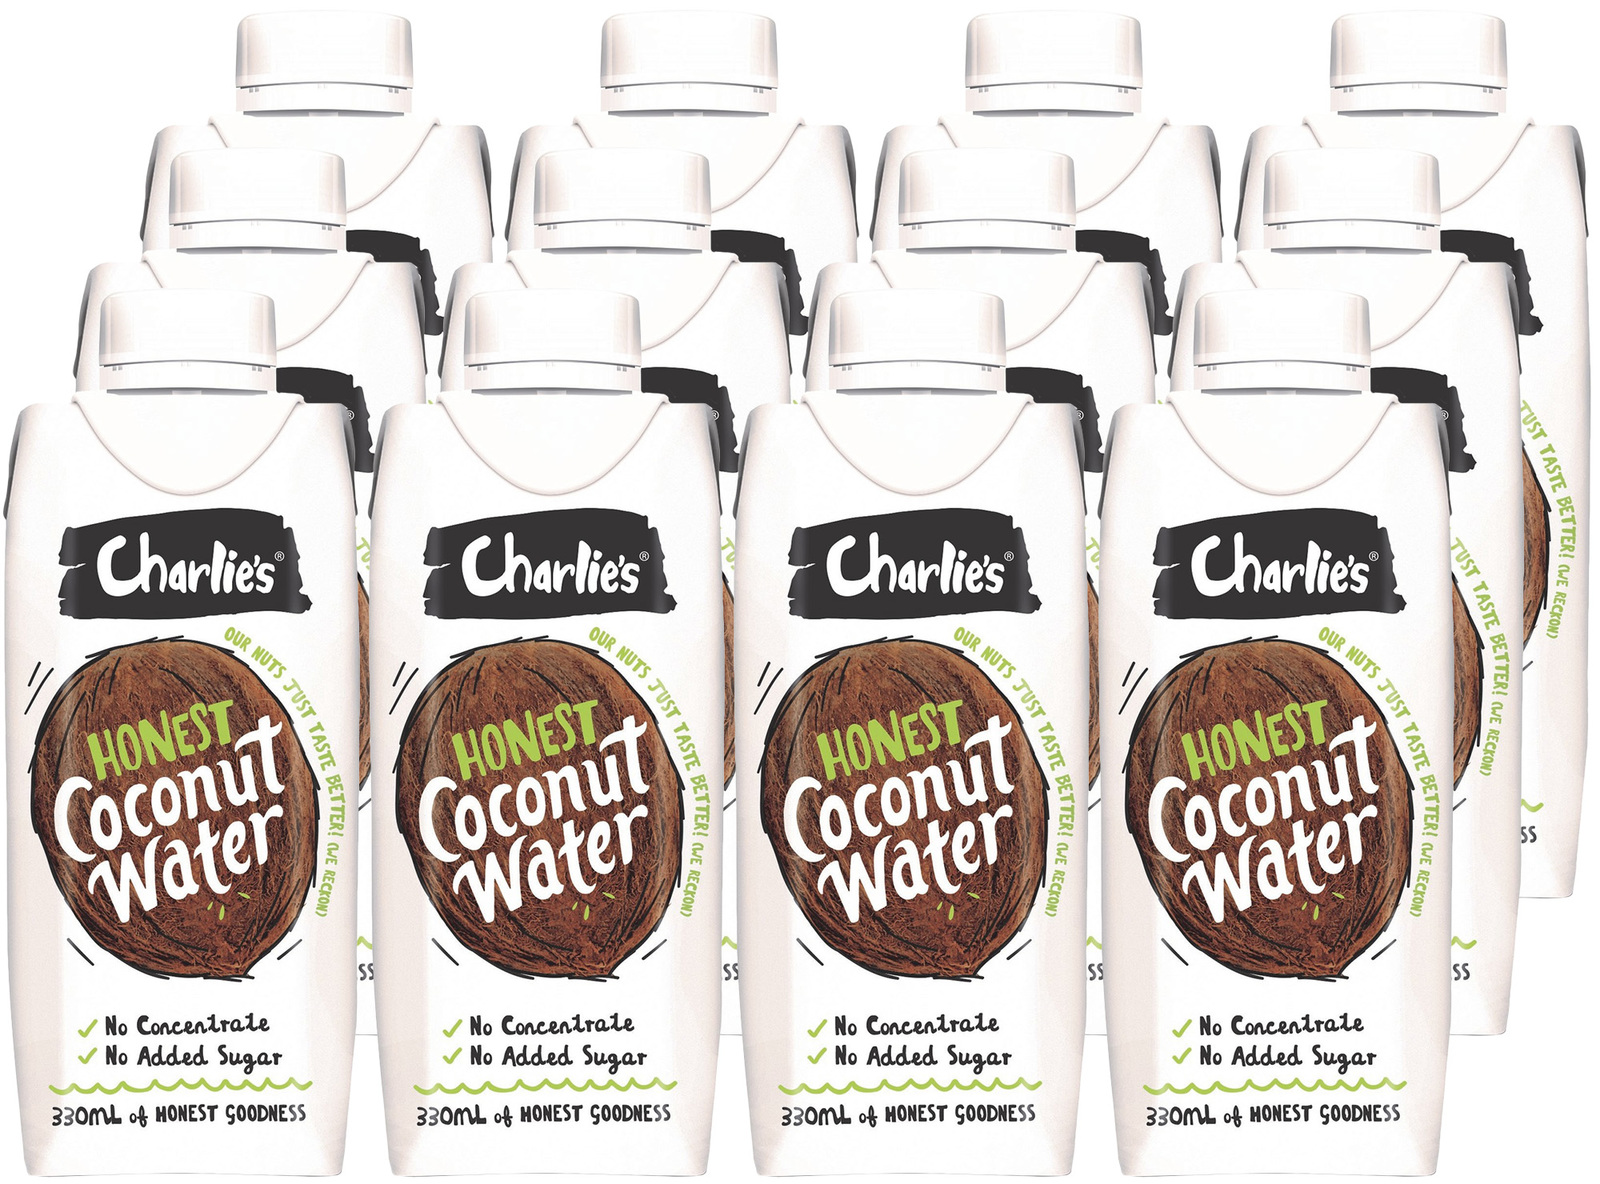 Charlie's Honest Coconut Water - 12x330mL image